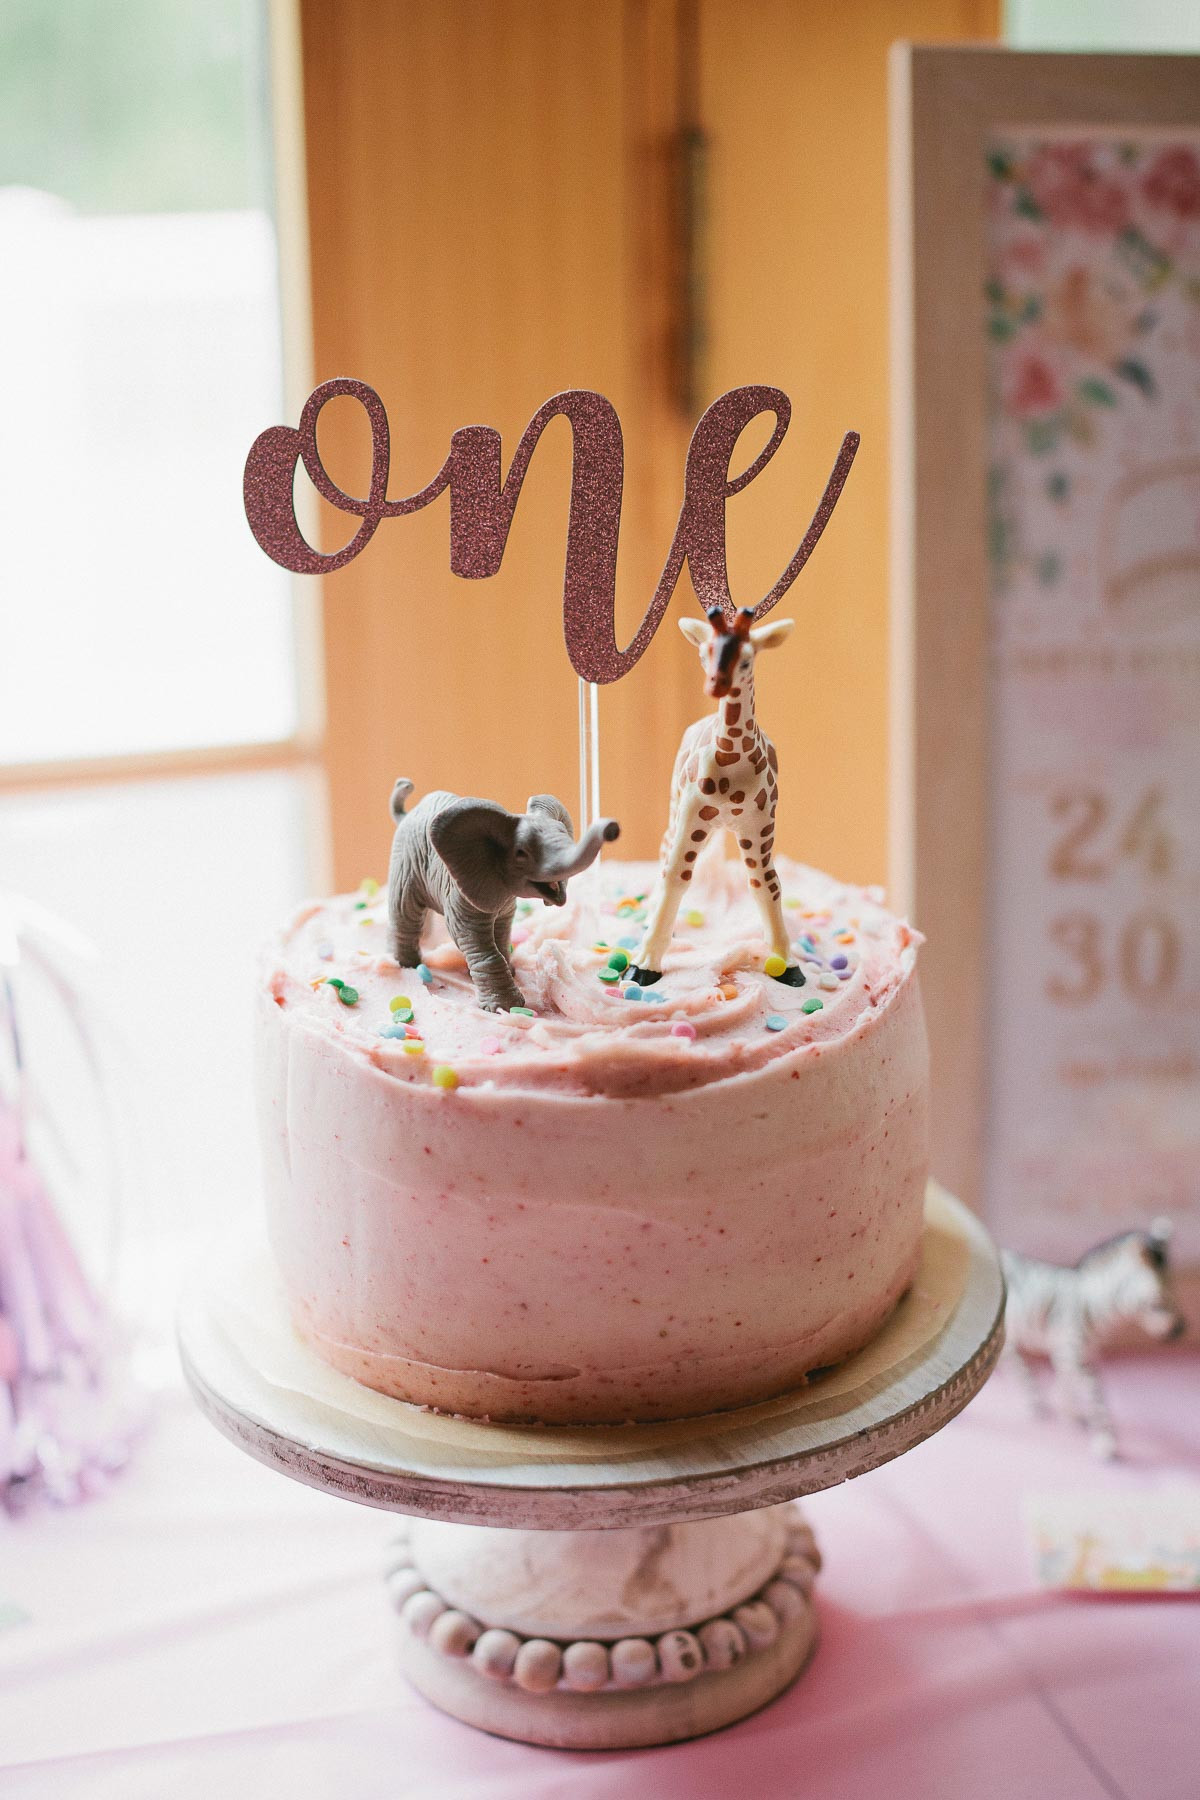 Best ideas about First Birthday Cake Recipe . Save or Pin 1st Birthday Cake Sallys Baking Addiction Now.